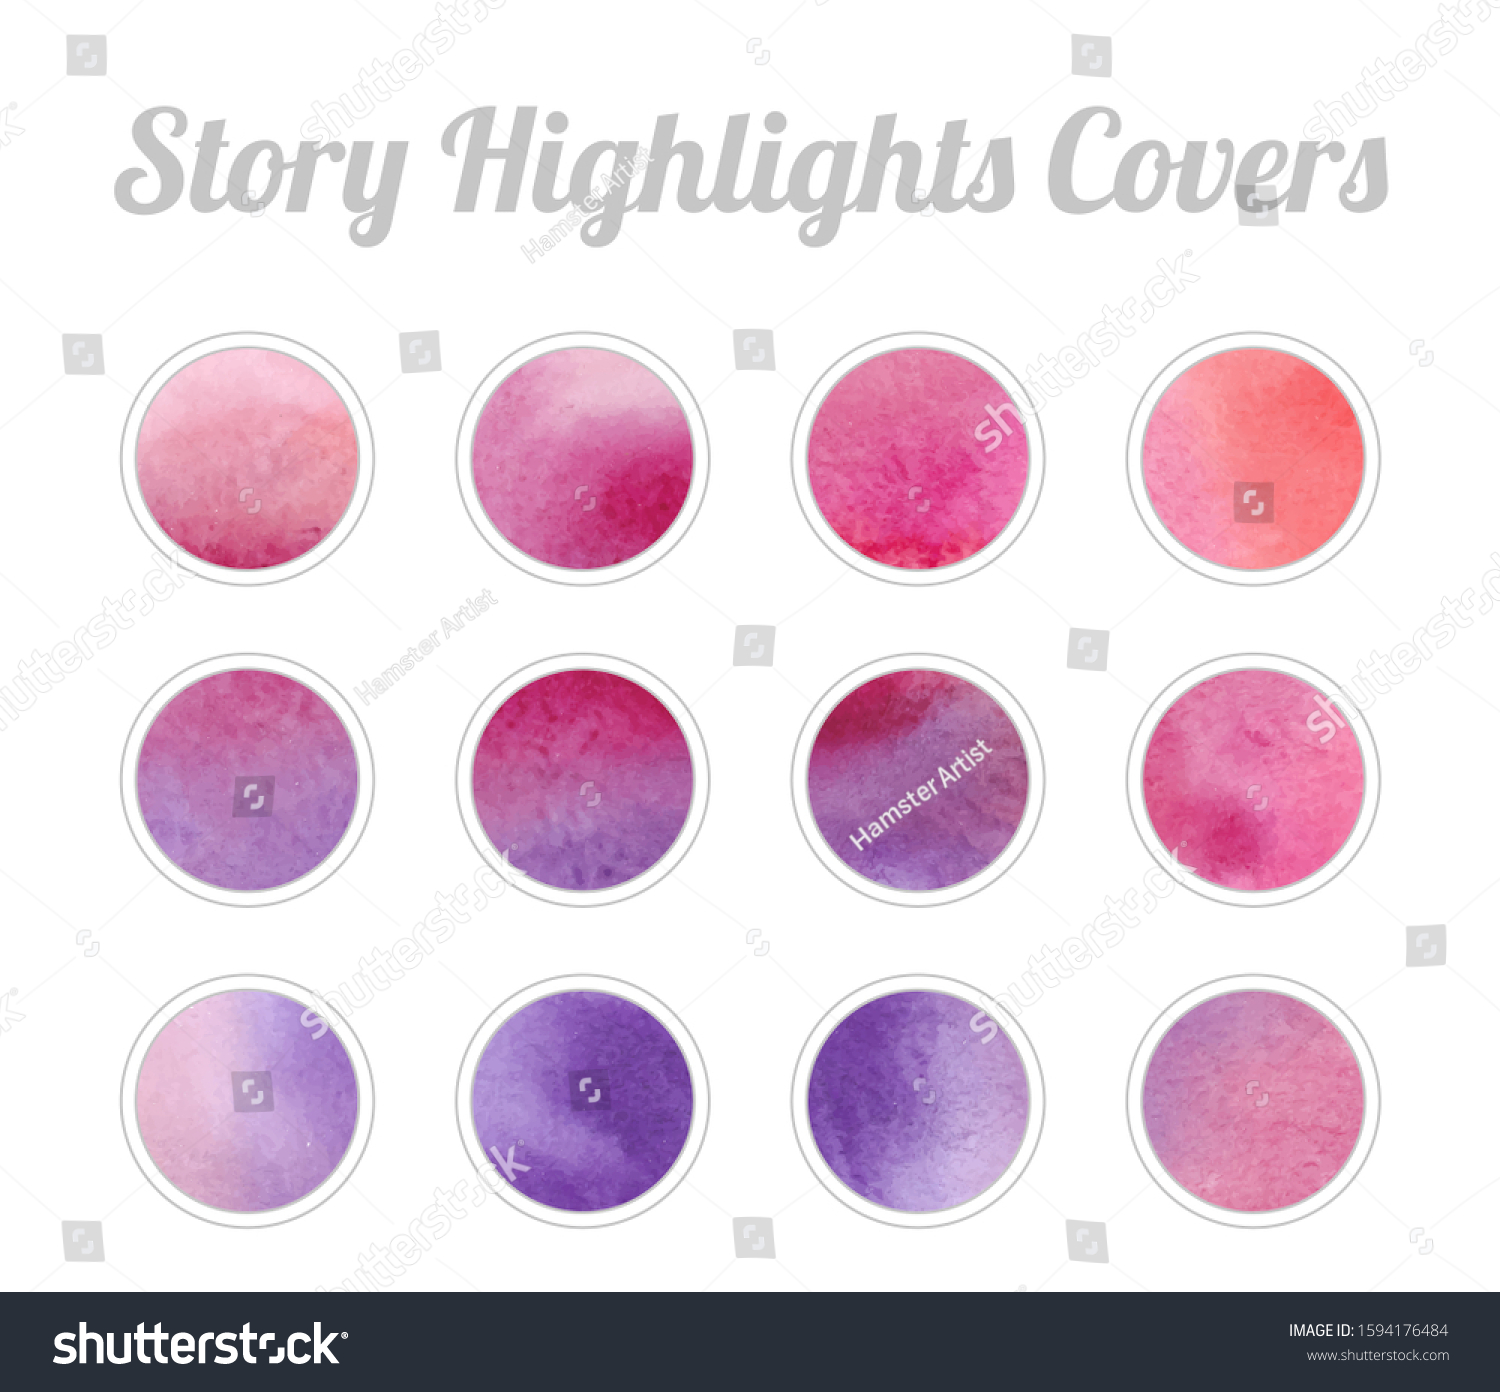 Set Instagram Story Highlights Covers Icons Stock Vector Royalty Free 1594176484